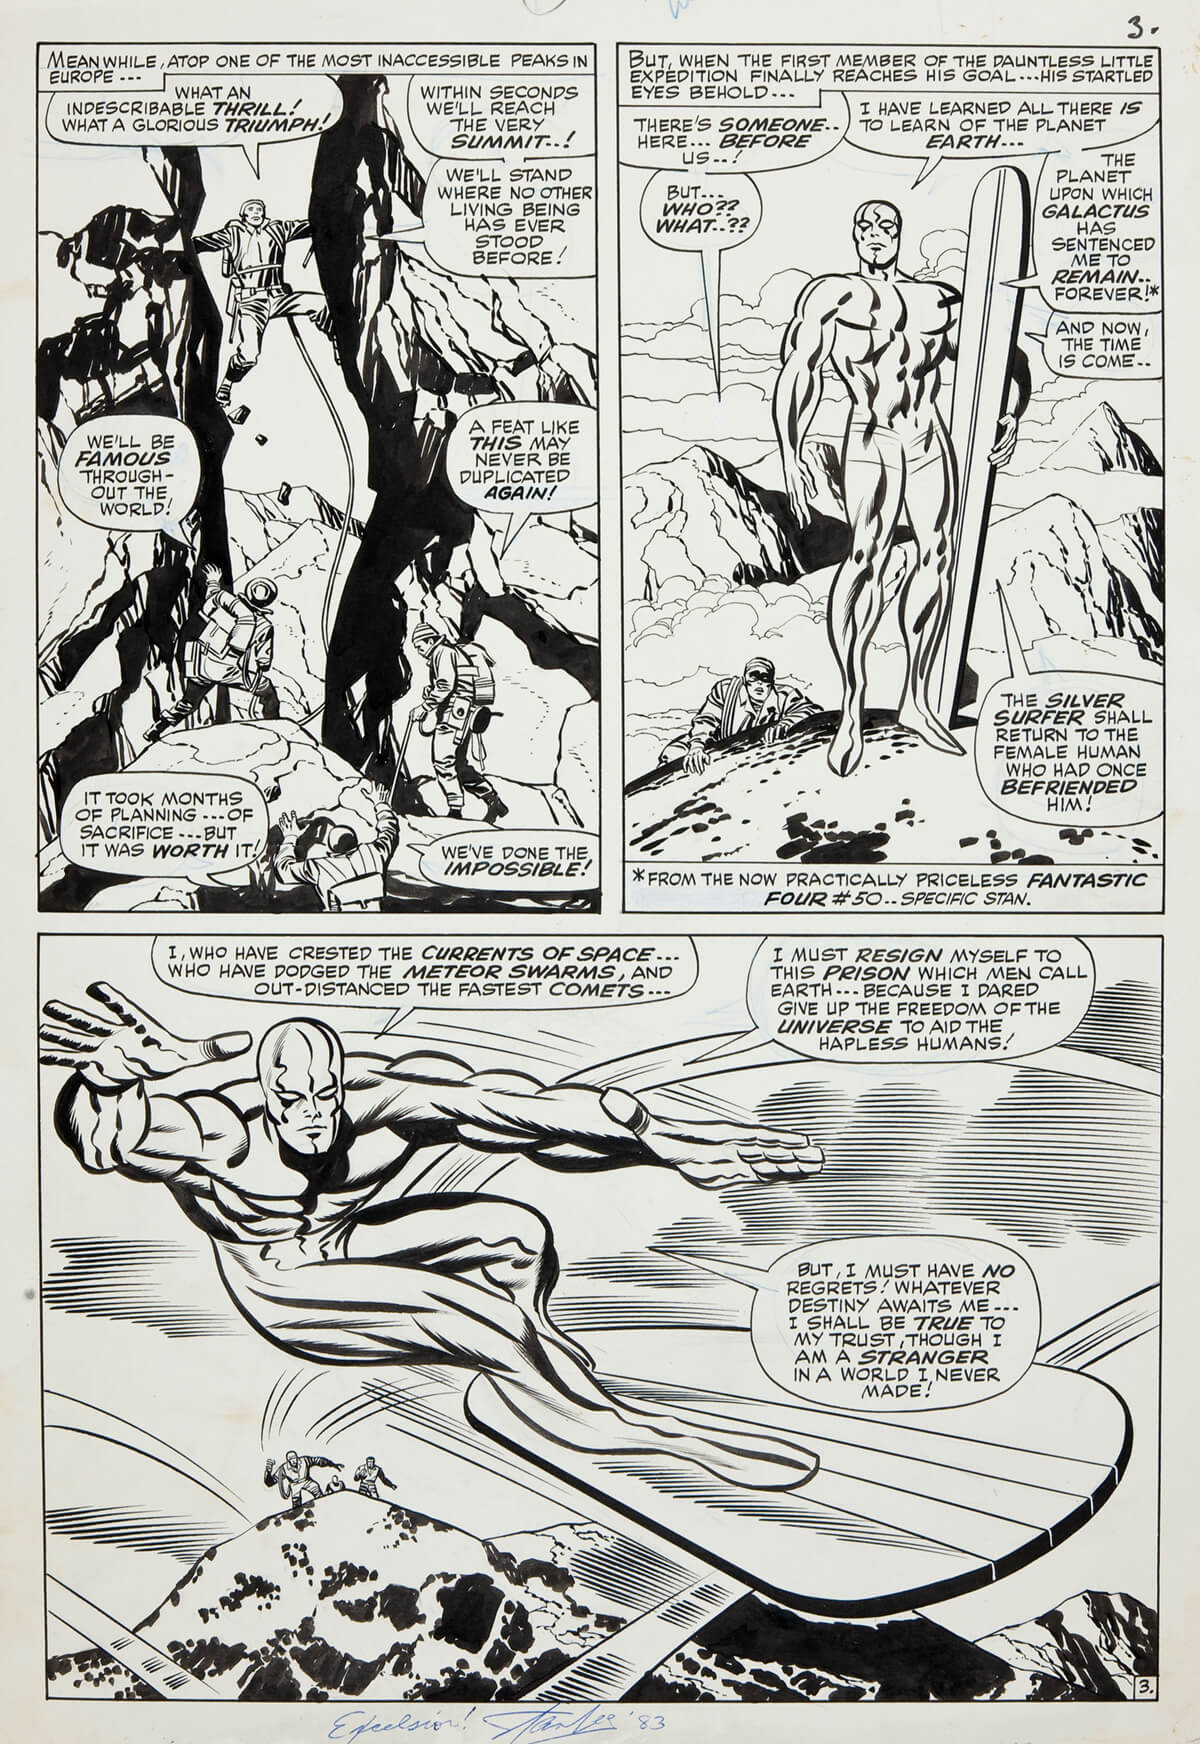 The Silver Surfer by Jack Kirby & Joe Sinnott